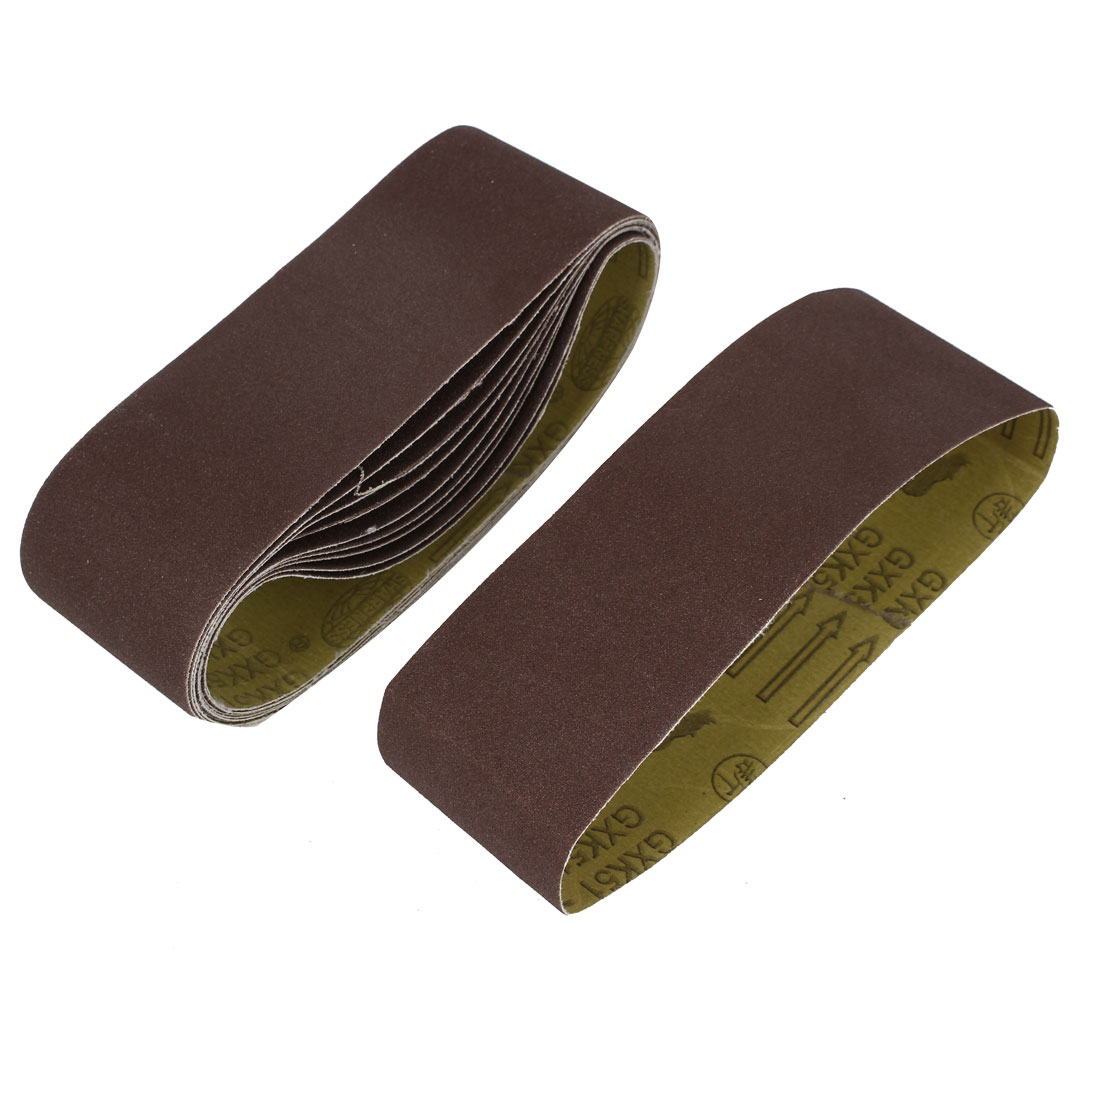 Woodworking 533mmx75mm 100 Grit Abrasive Sanding Belt Sandpaper 10pcs